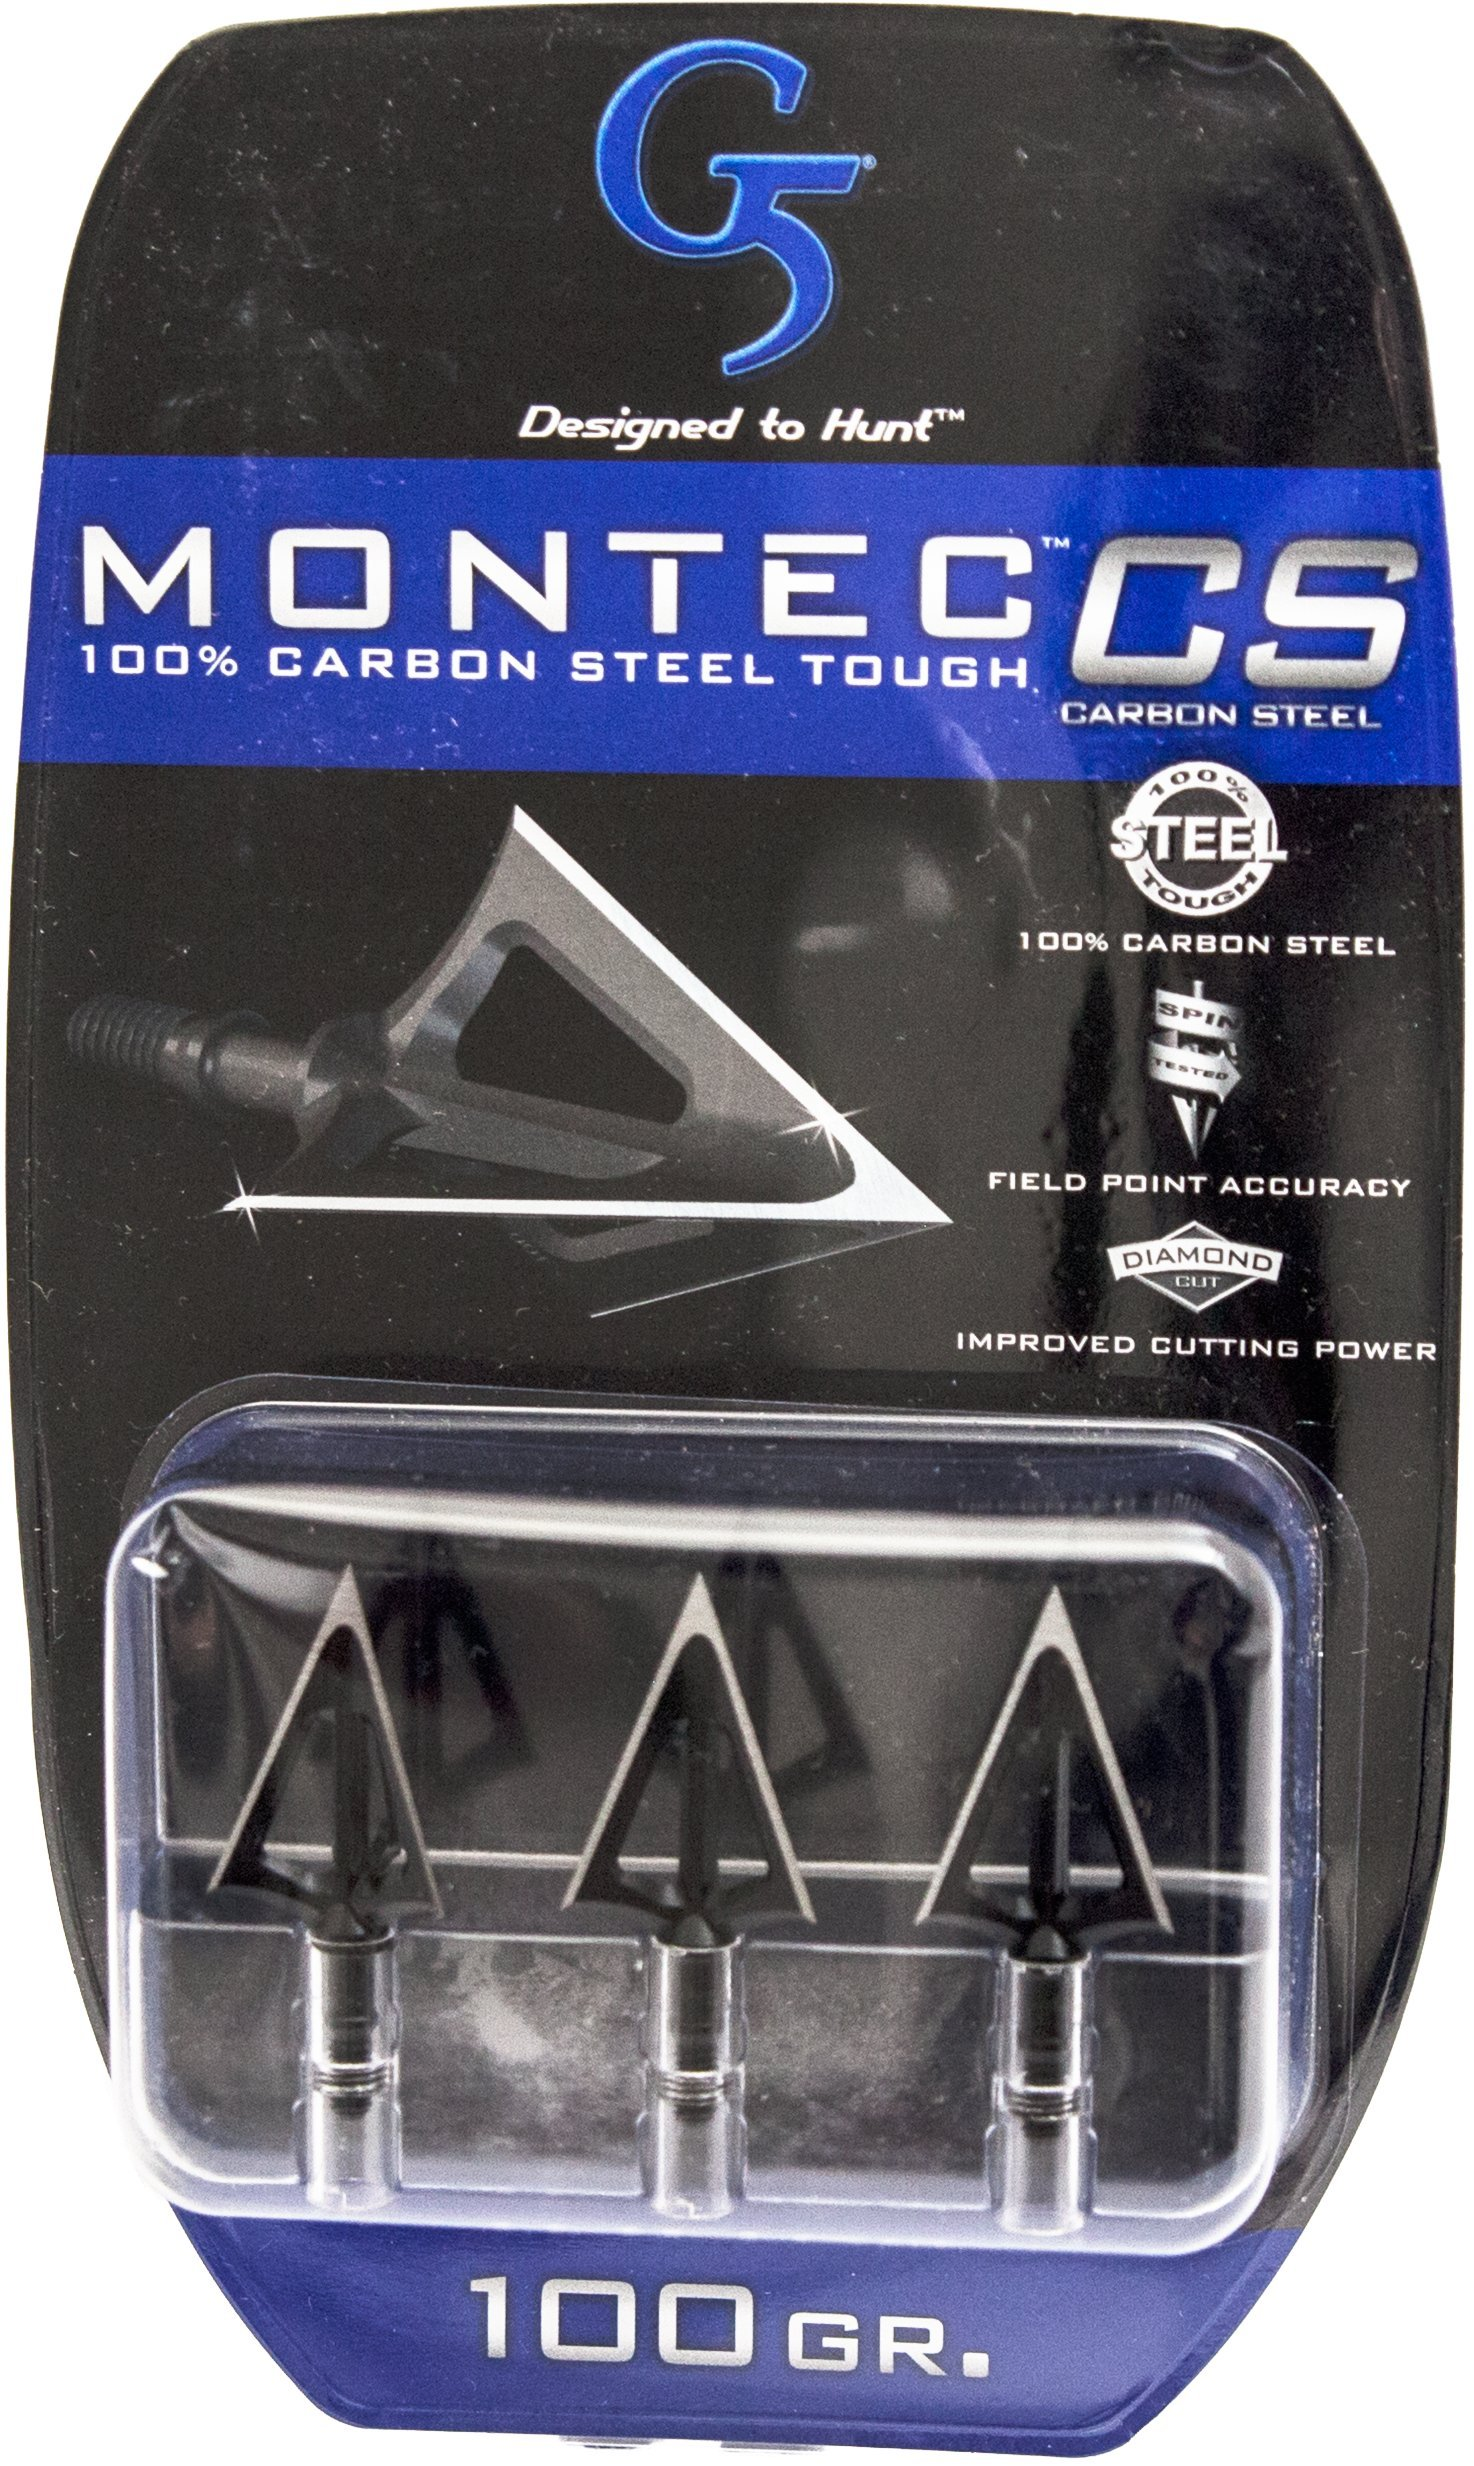 G5 Outdoors Montec 100 Grain Carbon Steel Premium Broadheads. Simple to Use, High Performance Broadhead,3 Pack by G5 Outdoors (Image #2)